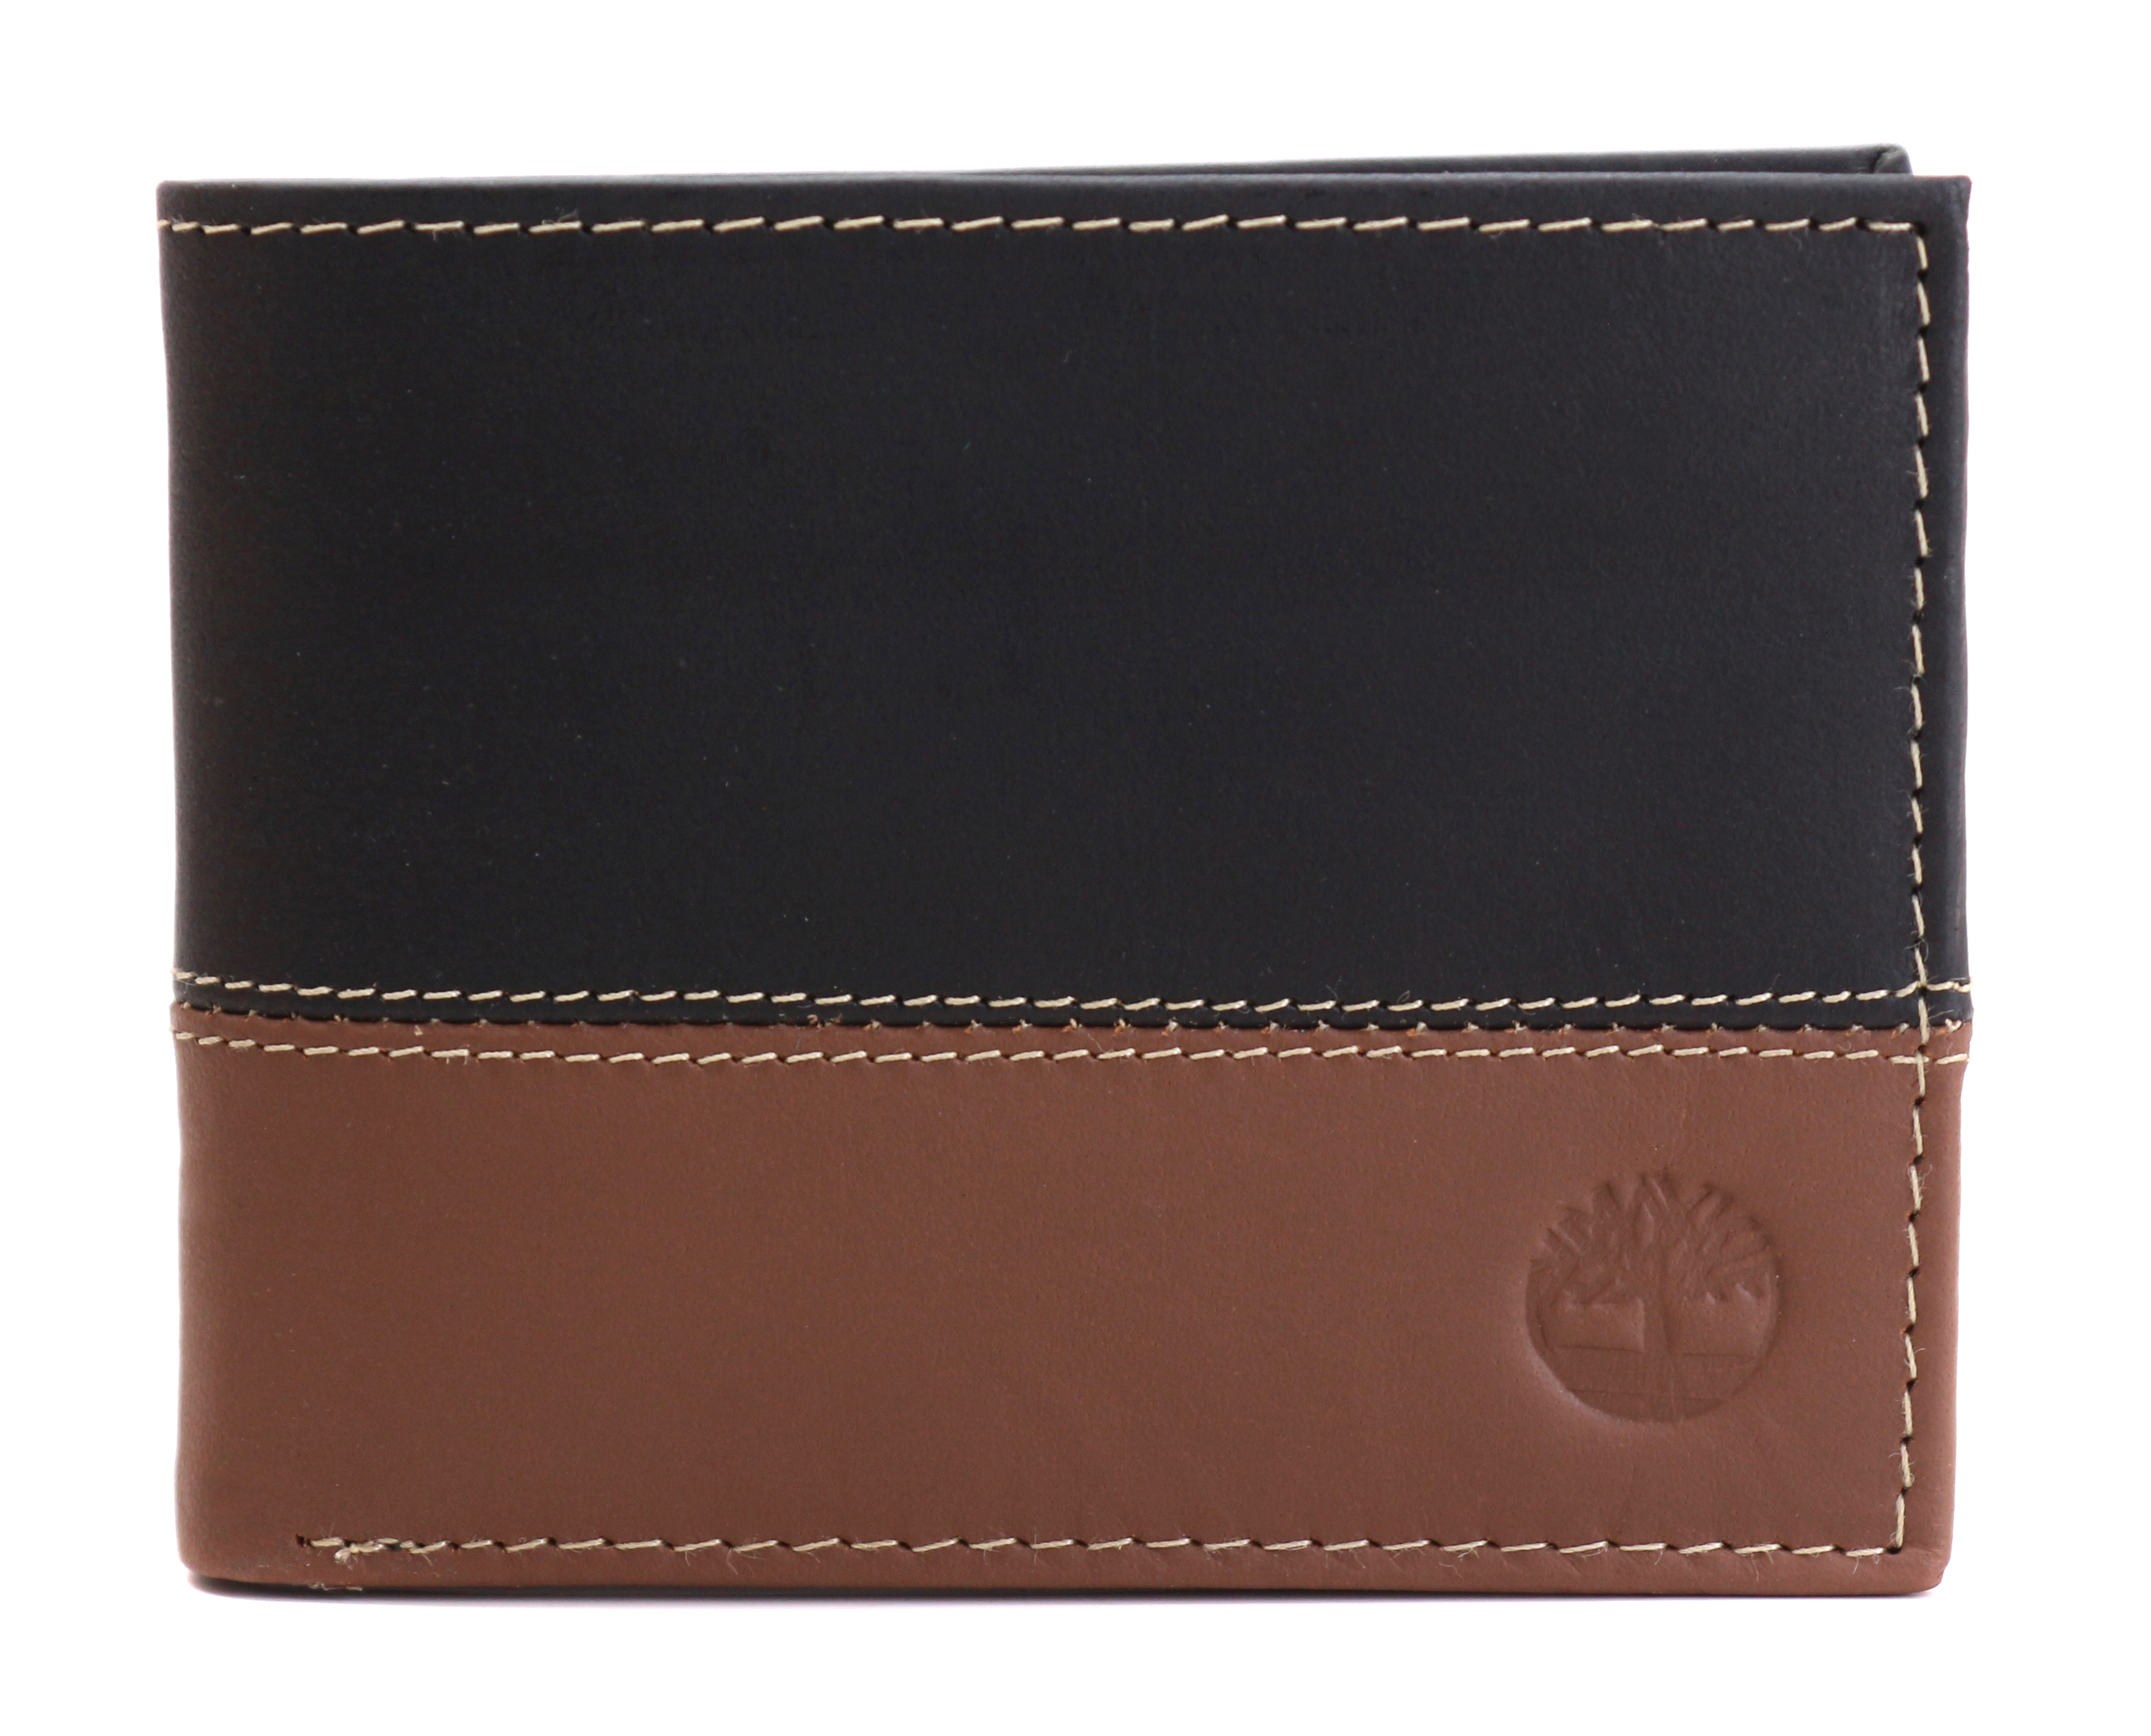 Timberland-Men-039-s-Genuine-Two-Tone-Leather-Credit-Card-Billfold-Commuter-Wallet thumbnail 11